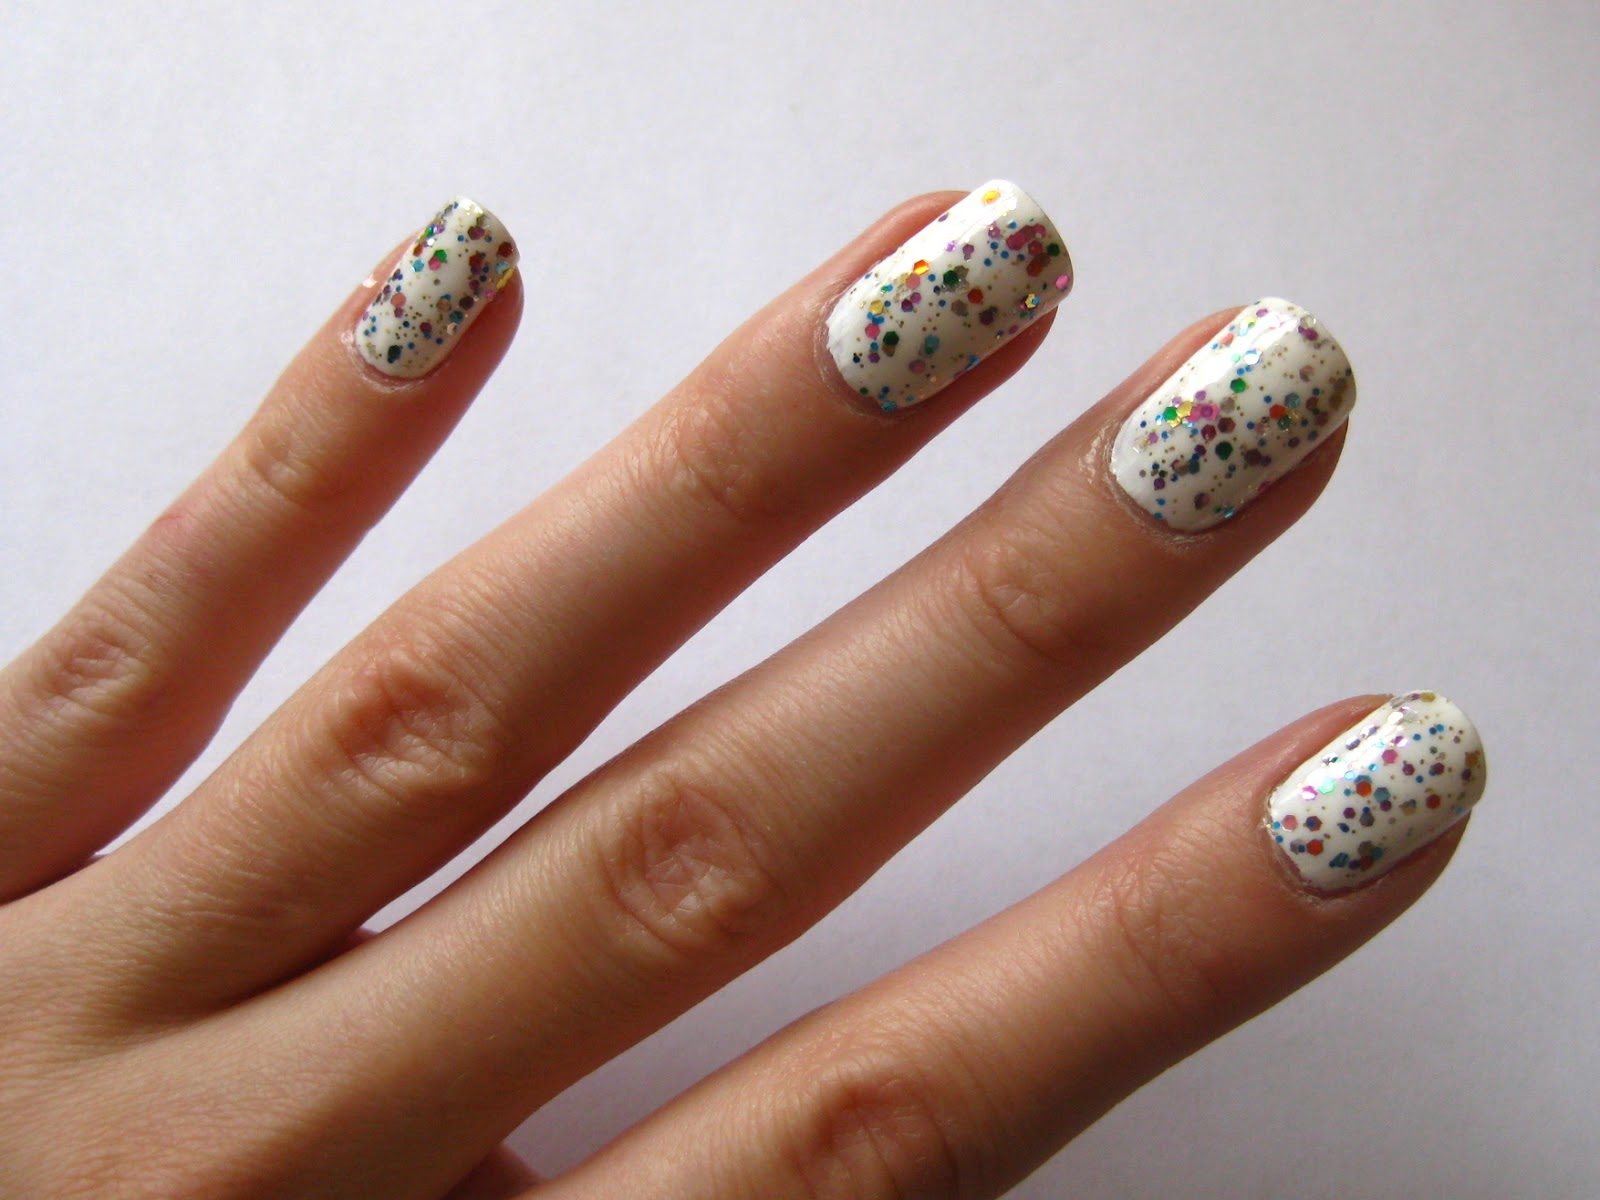 Crystal Castle Uk Beauty And Lifestyle Blog Nails Circus Confetti